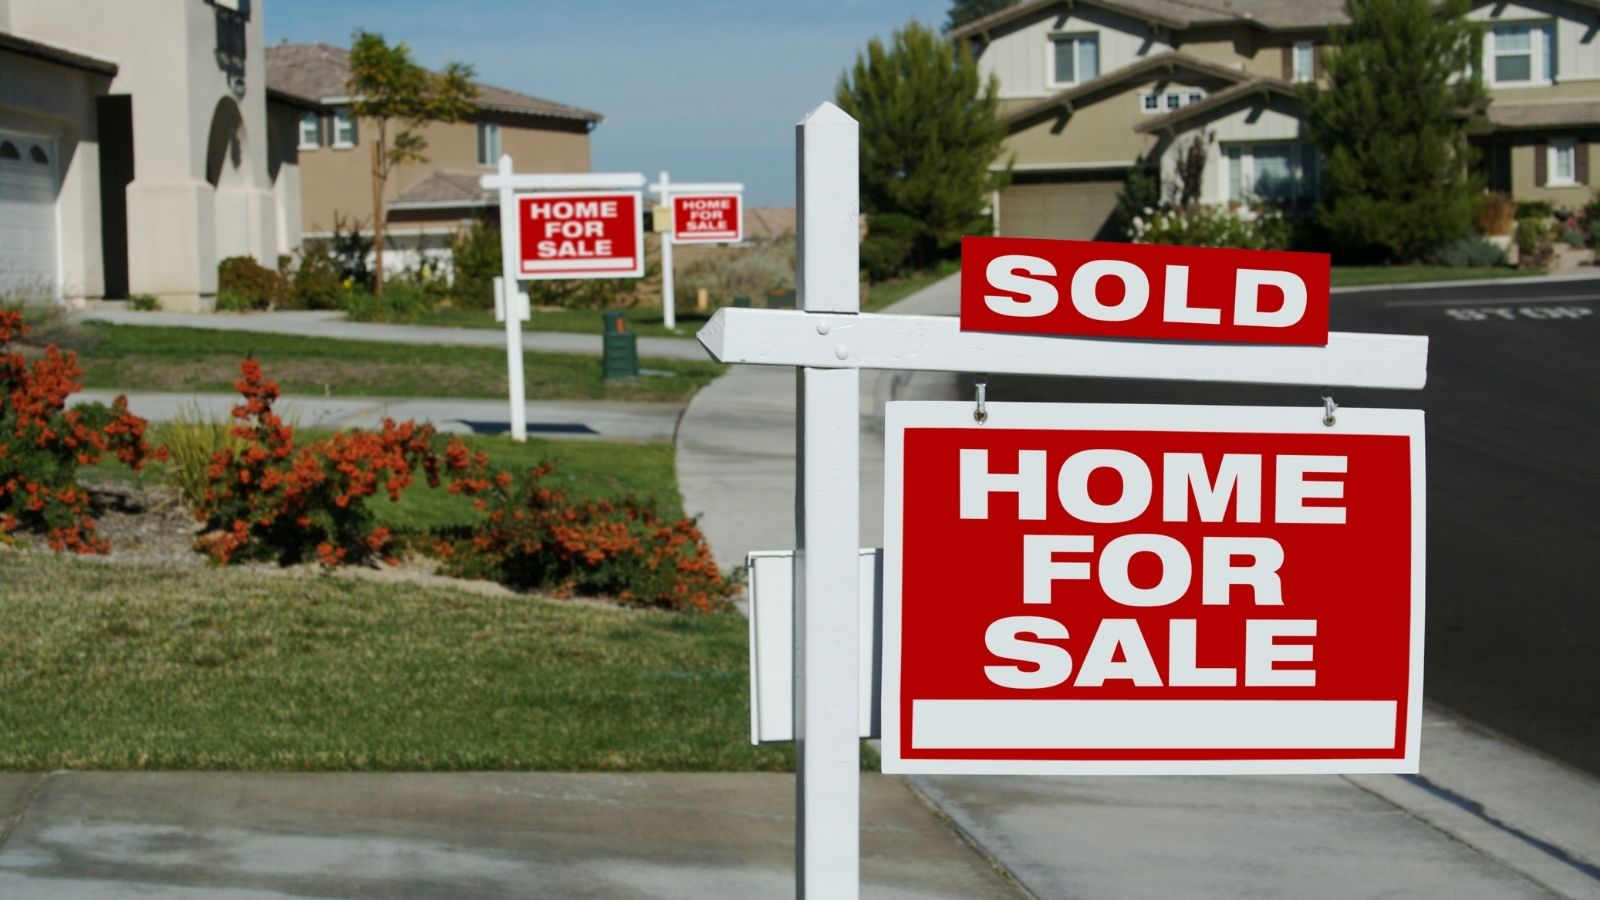 6 Steps To Selling Your Home Fast